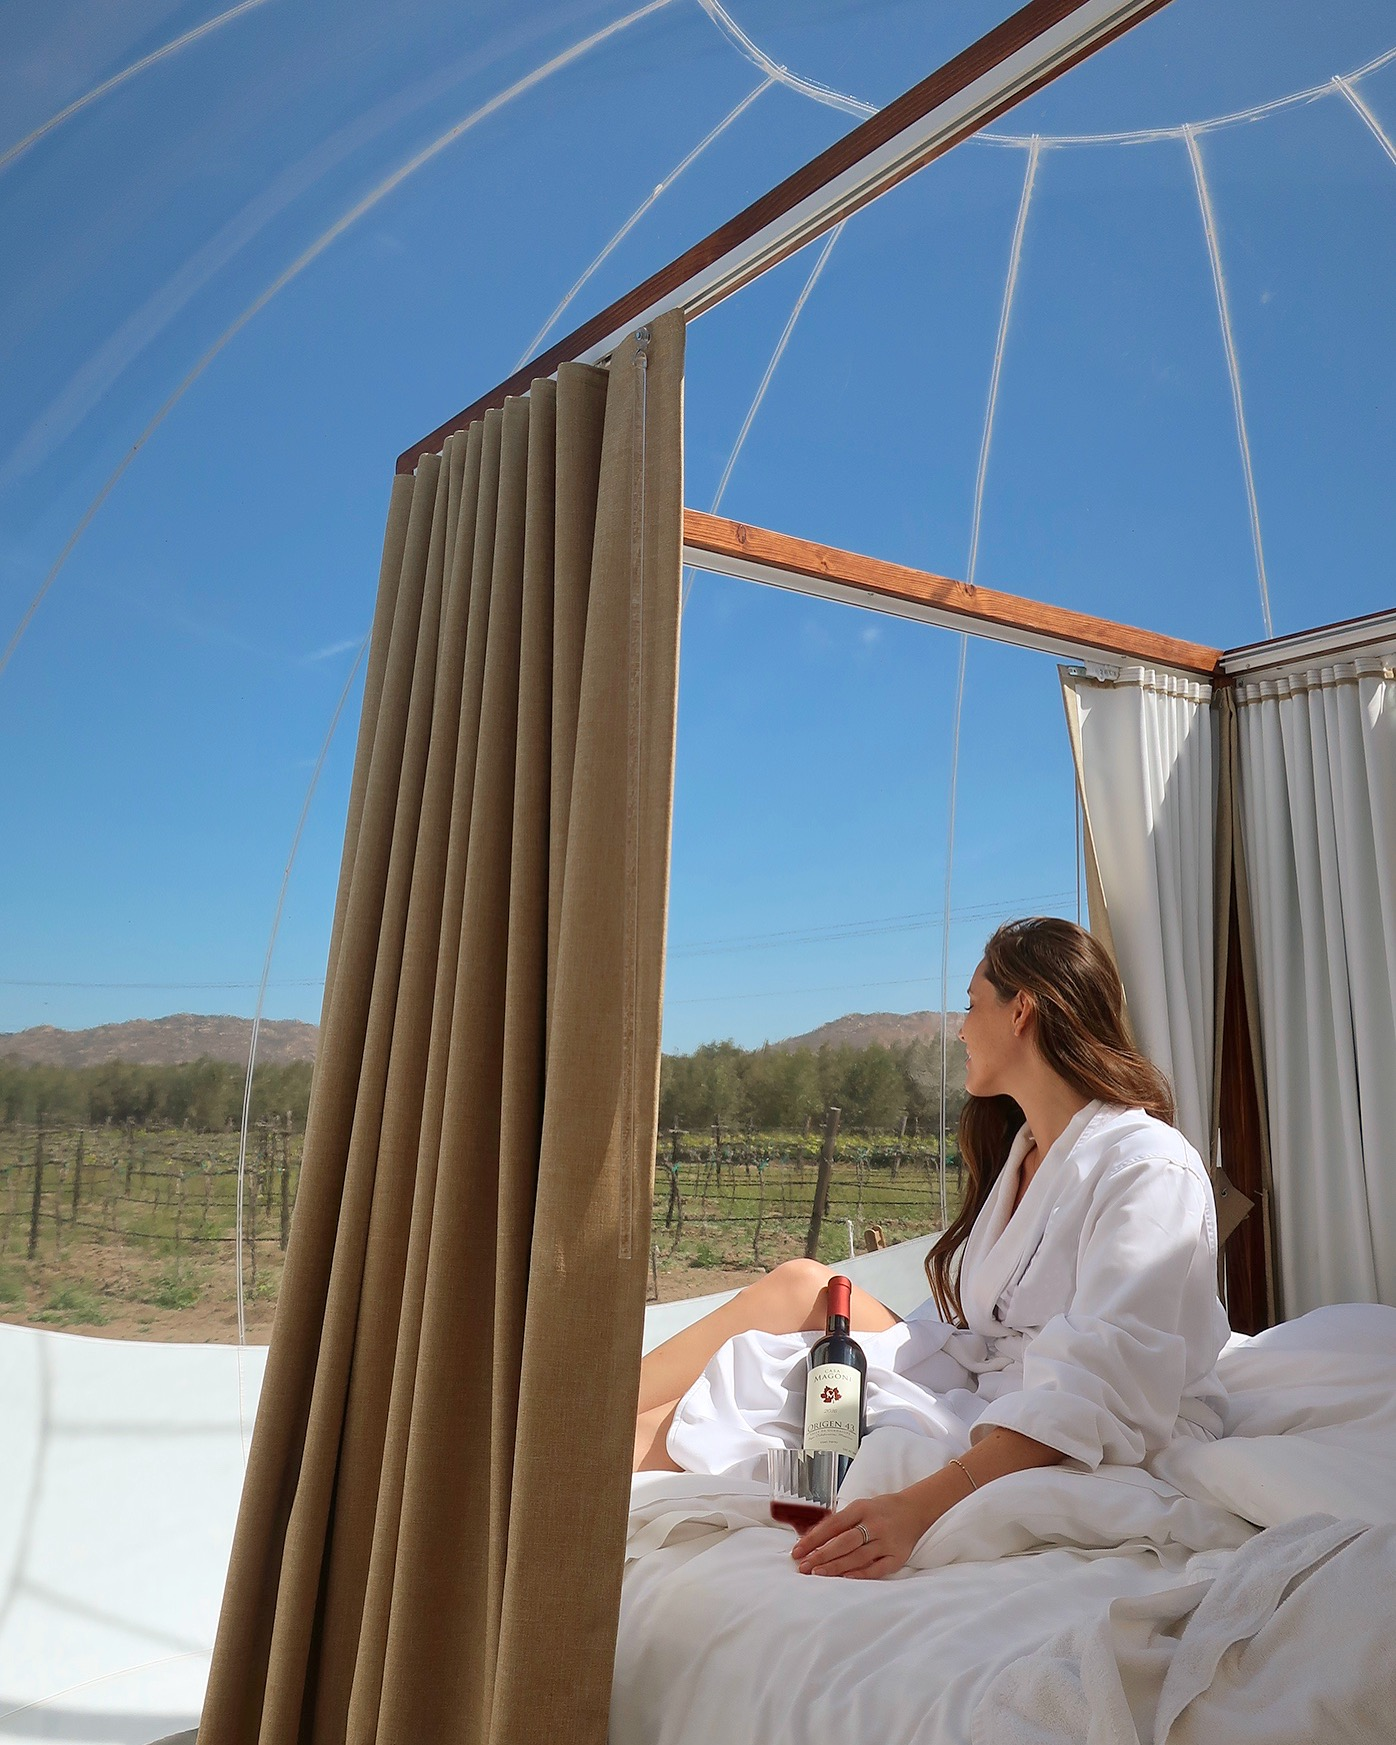 """Campera Hotel Burbuja has 10 """"bubble rooms and Suites"""", allowing guests to connect to nature while admiring views of Valle de Guadalupe's vineyards."""